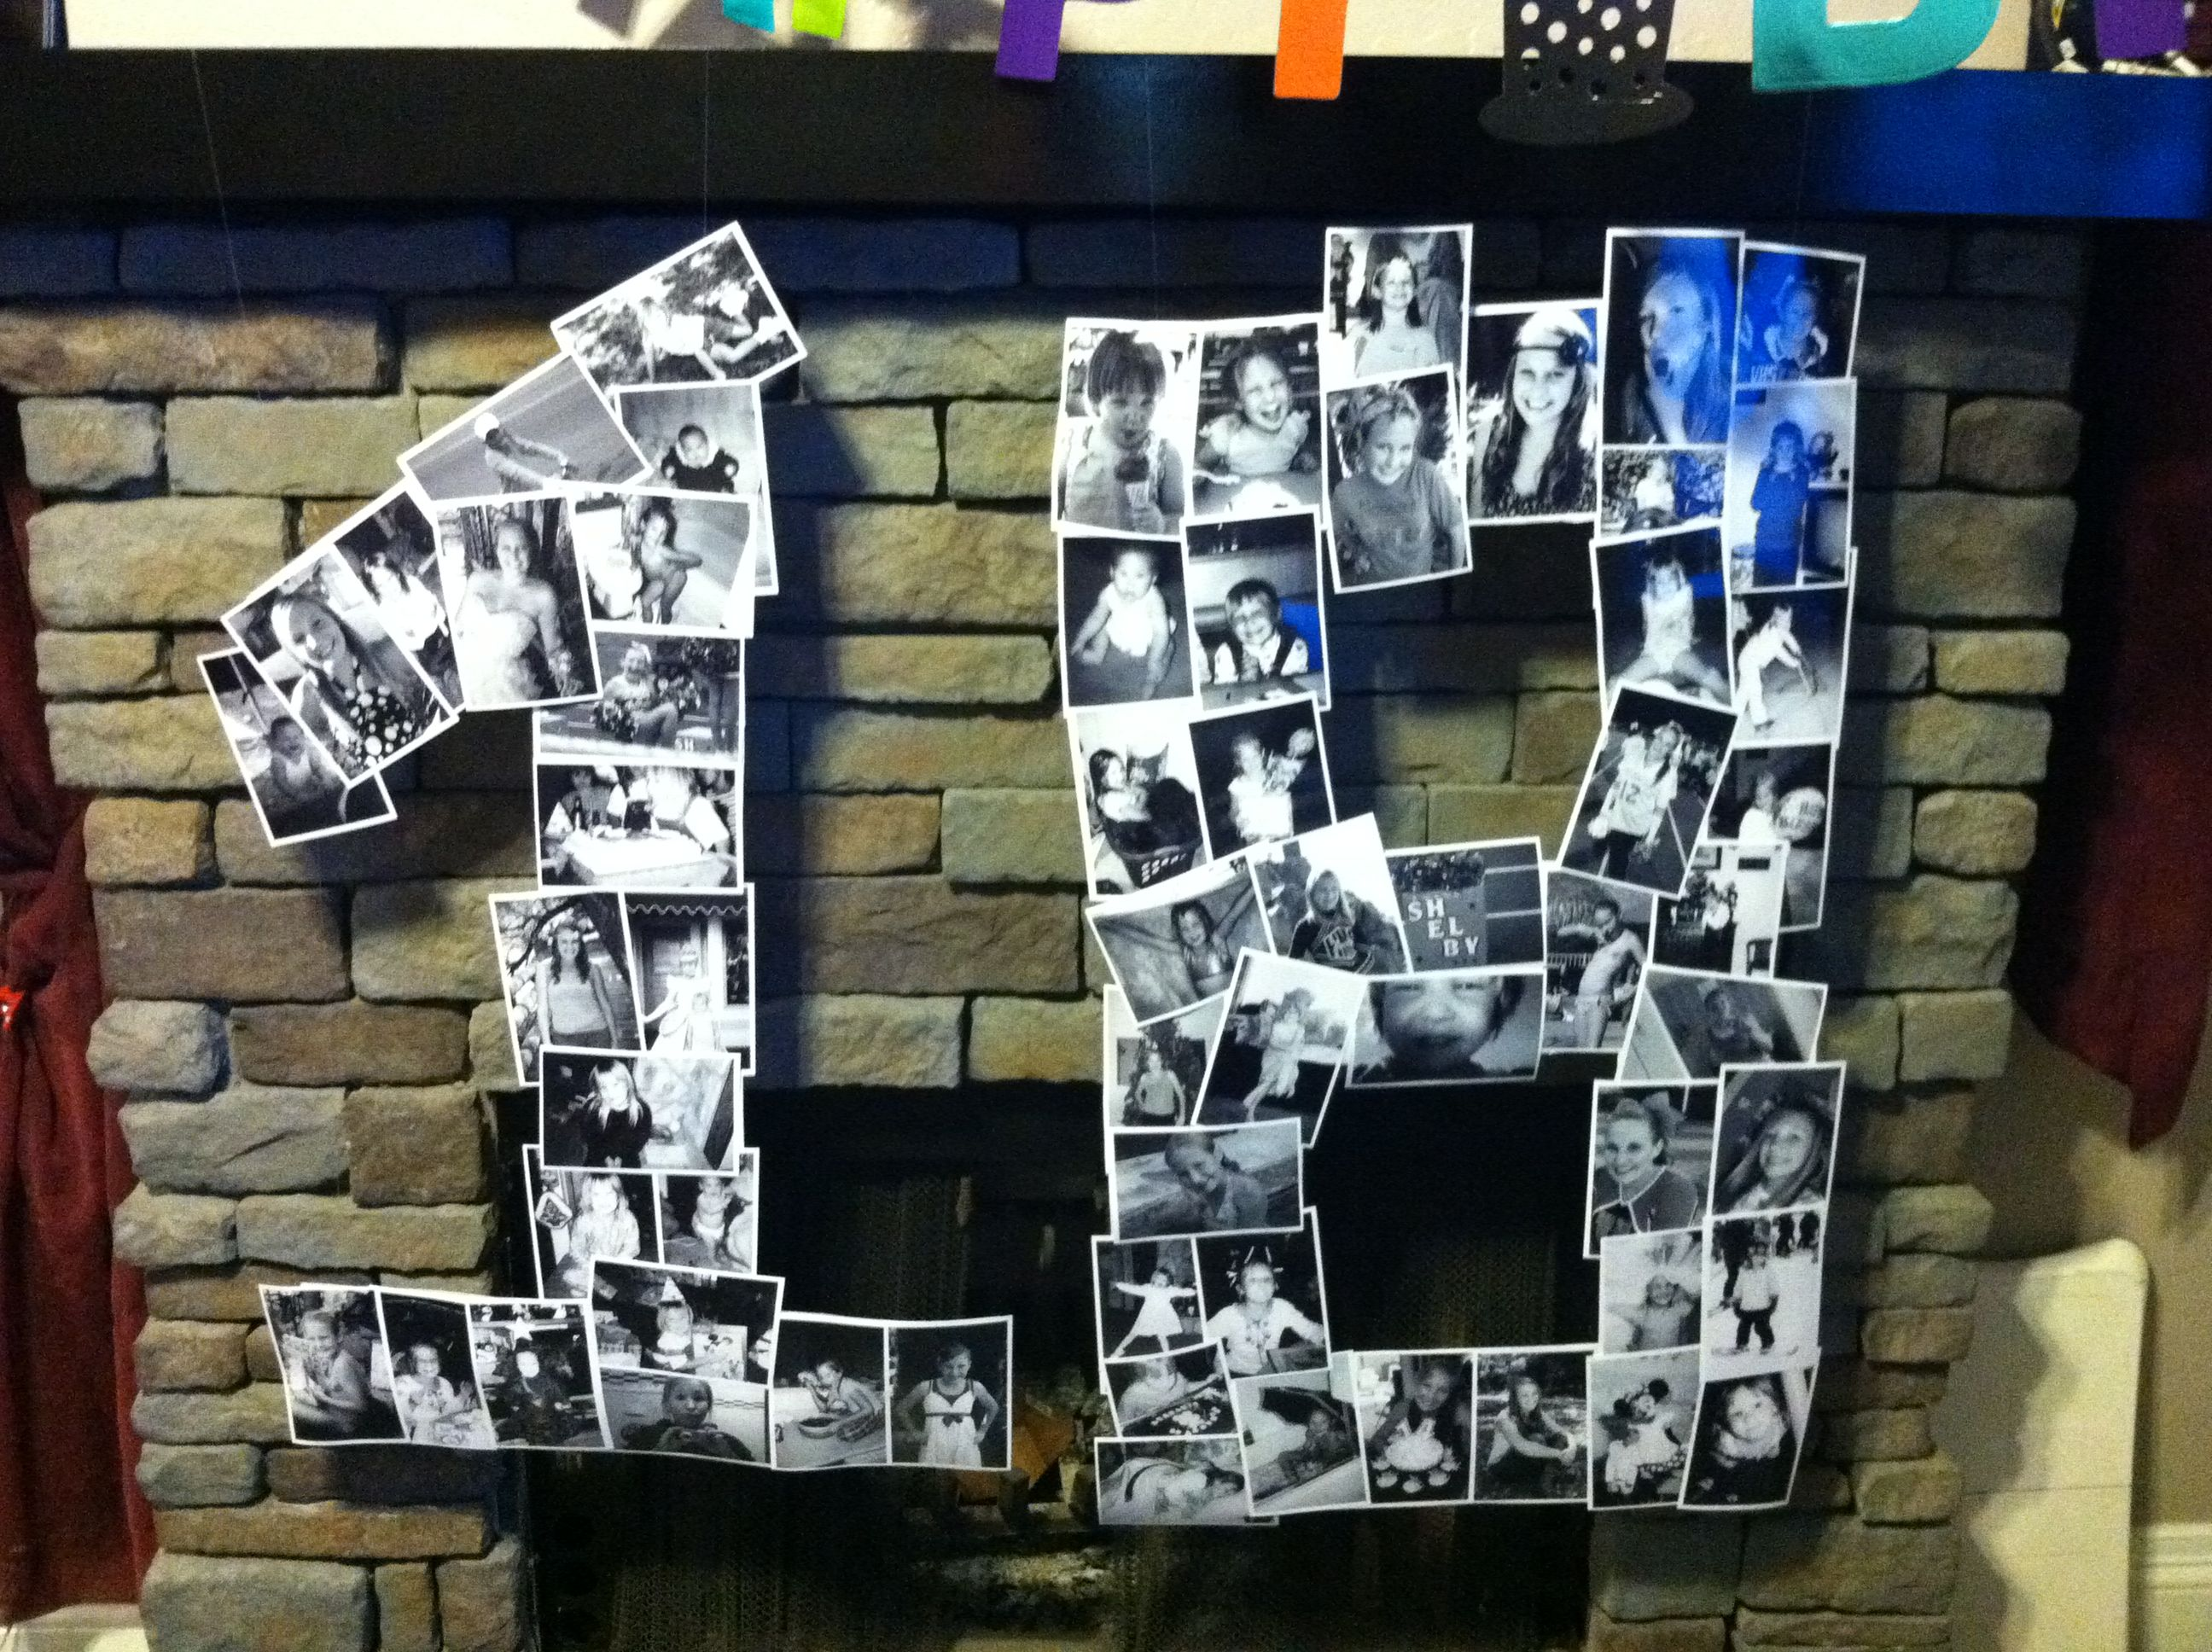 picture collage ideas for birthday party ; fe28171cfe97d1a30fcb8b797823d9c6